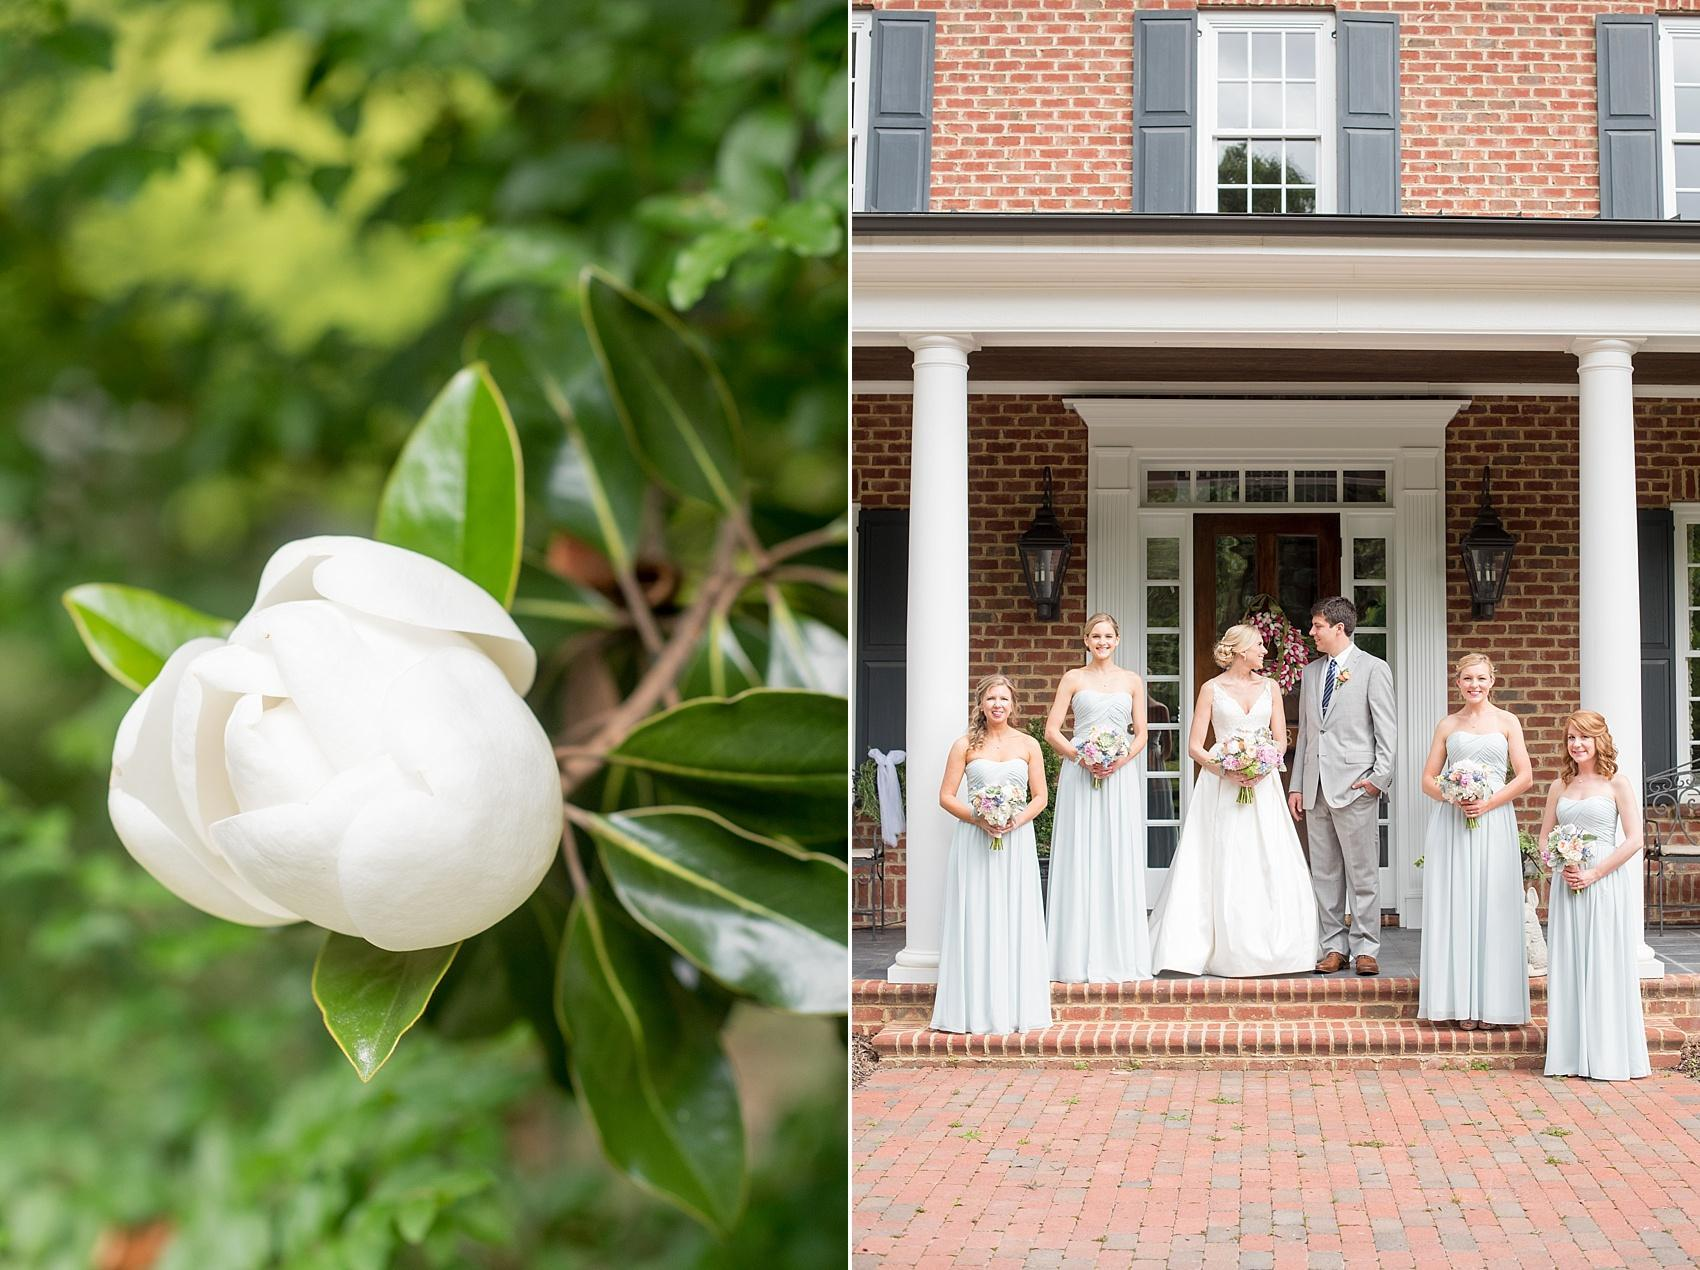 Mikkel Paige Photography photos of a downtown Raleigh Market Hall wedding with spring pictures of the bride and bridesmaids in Bari Jay misty blue gowns.